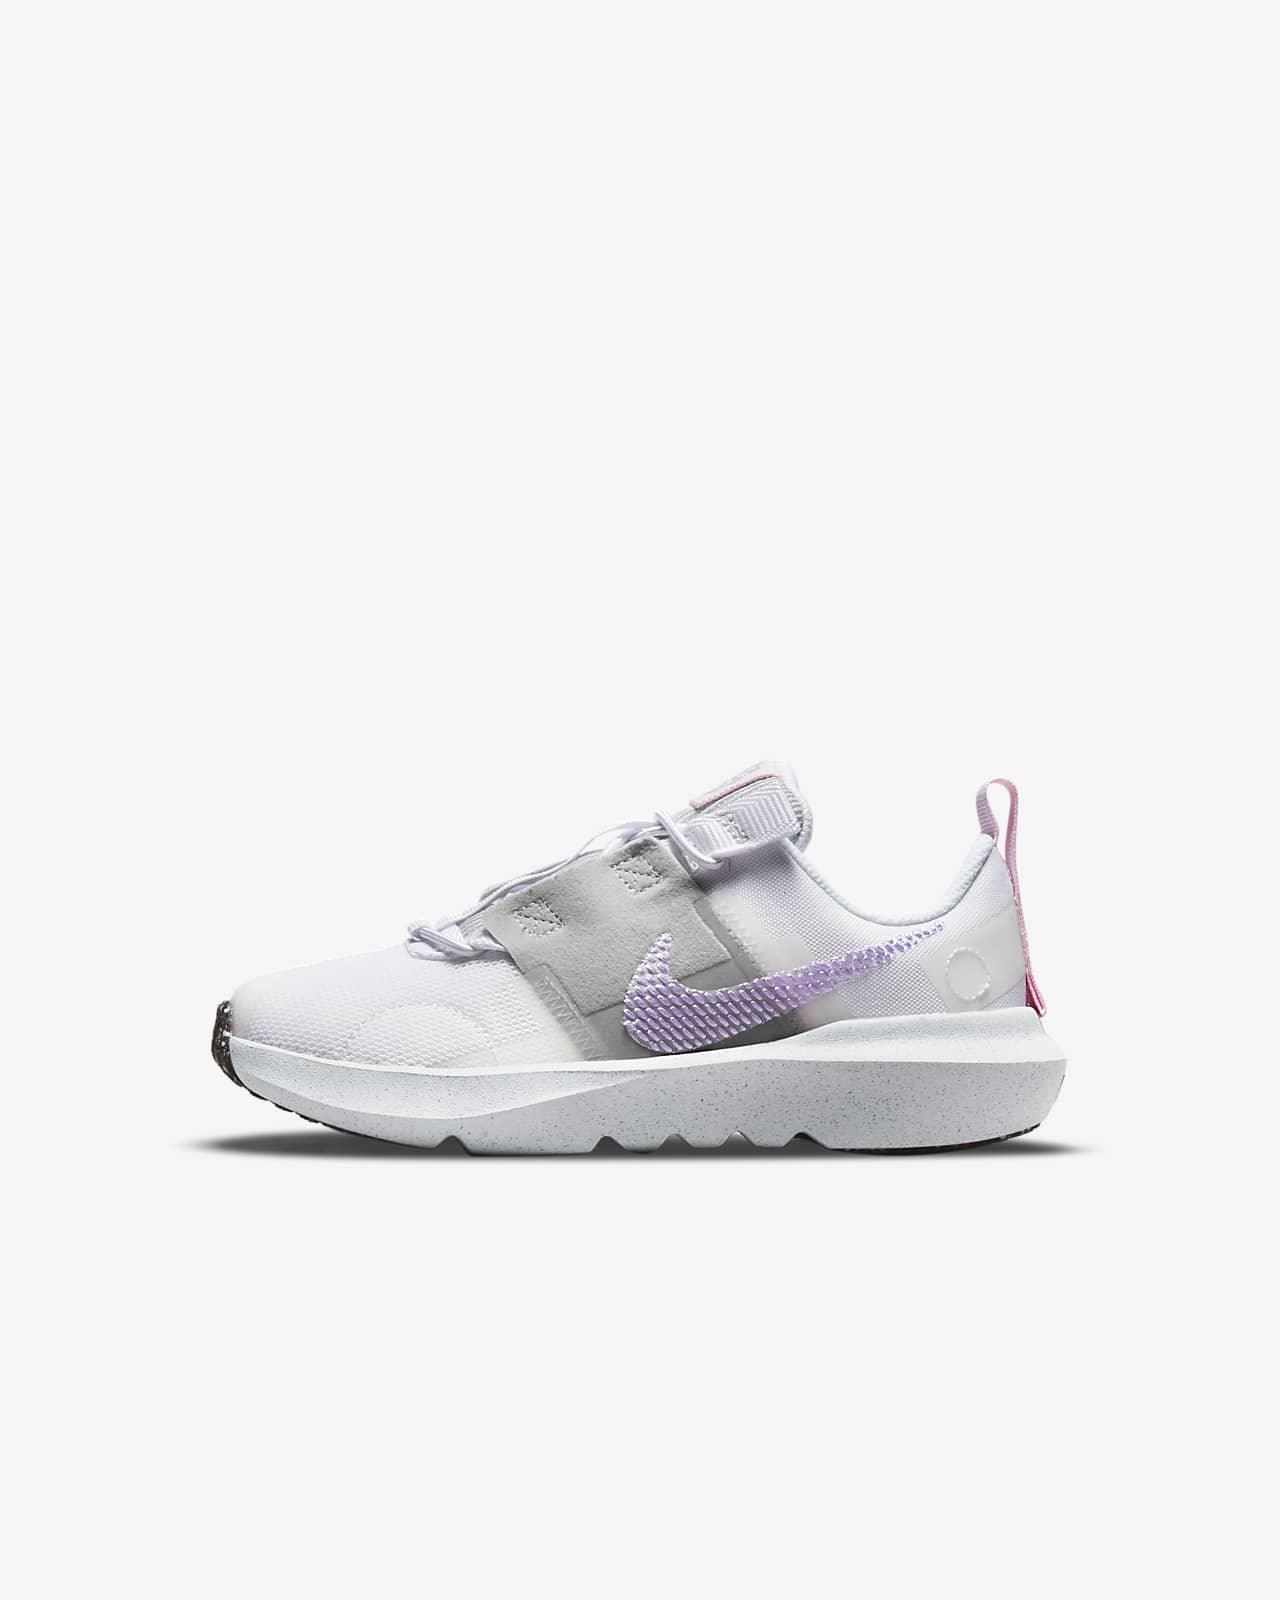 Nike Crater Impact Little Kids' Shoes